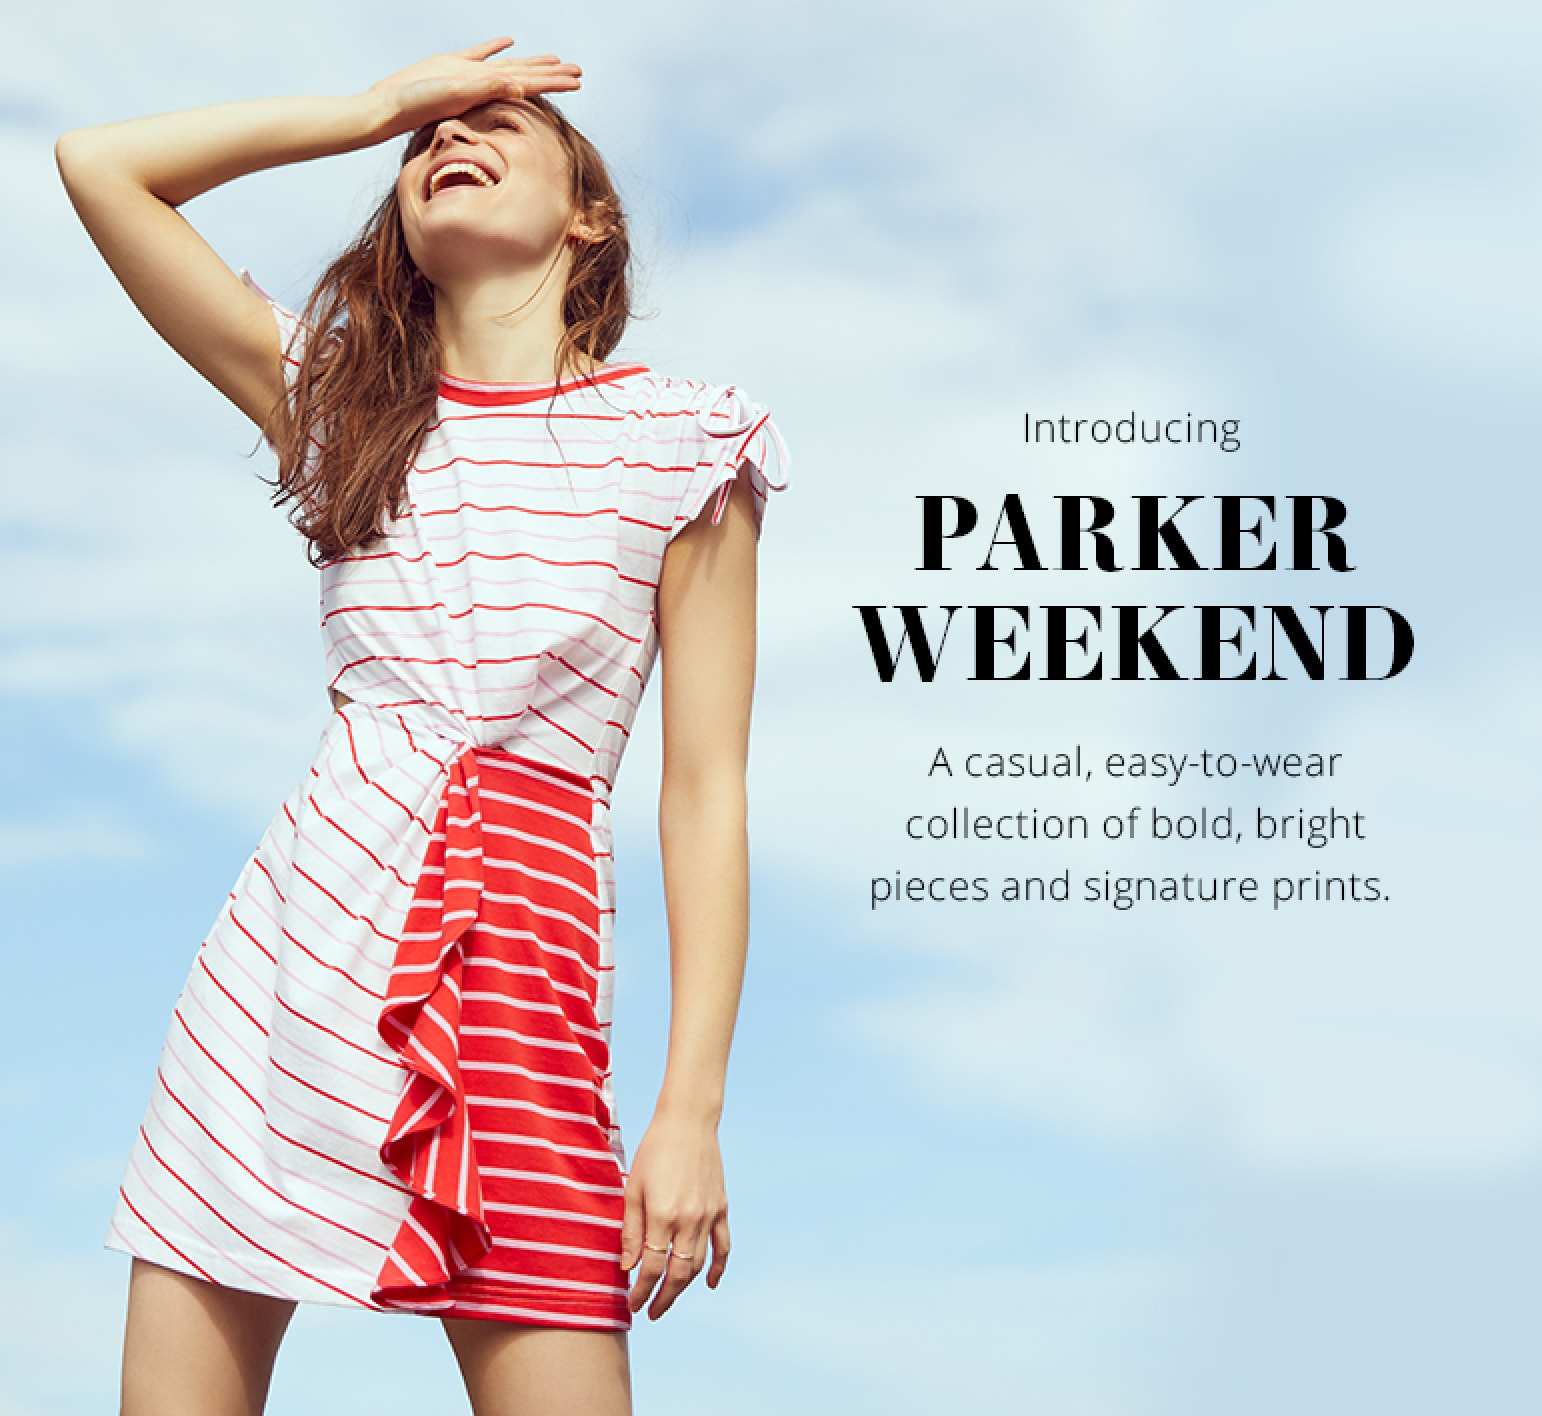 Parker Weekend Category Page Intro